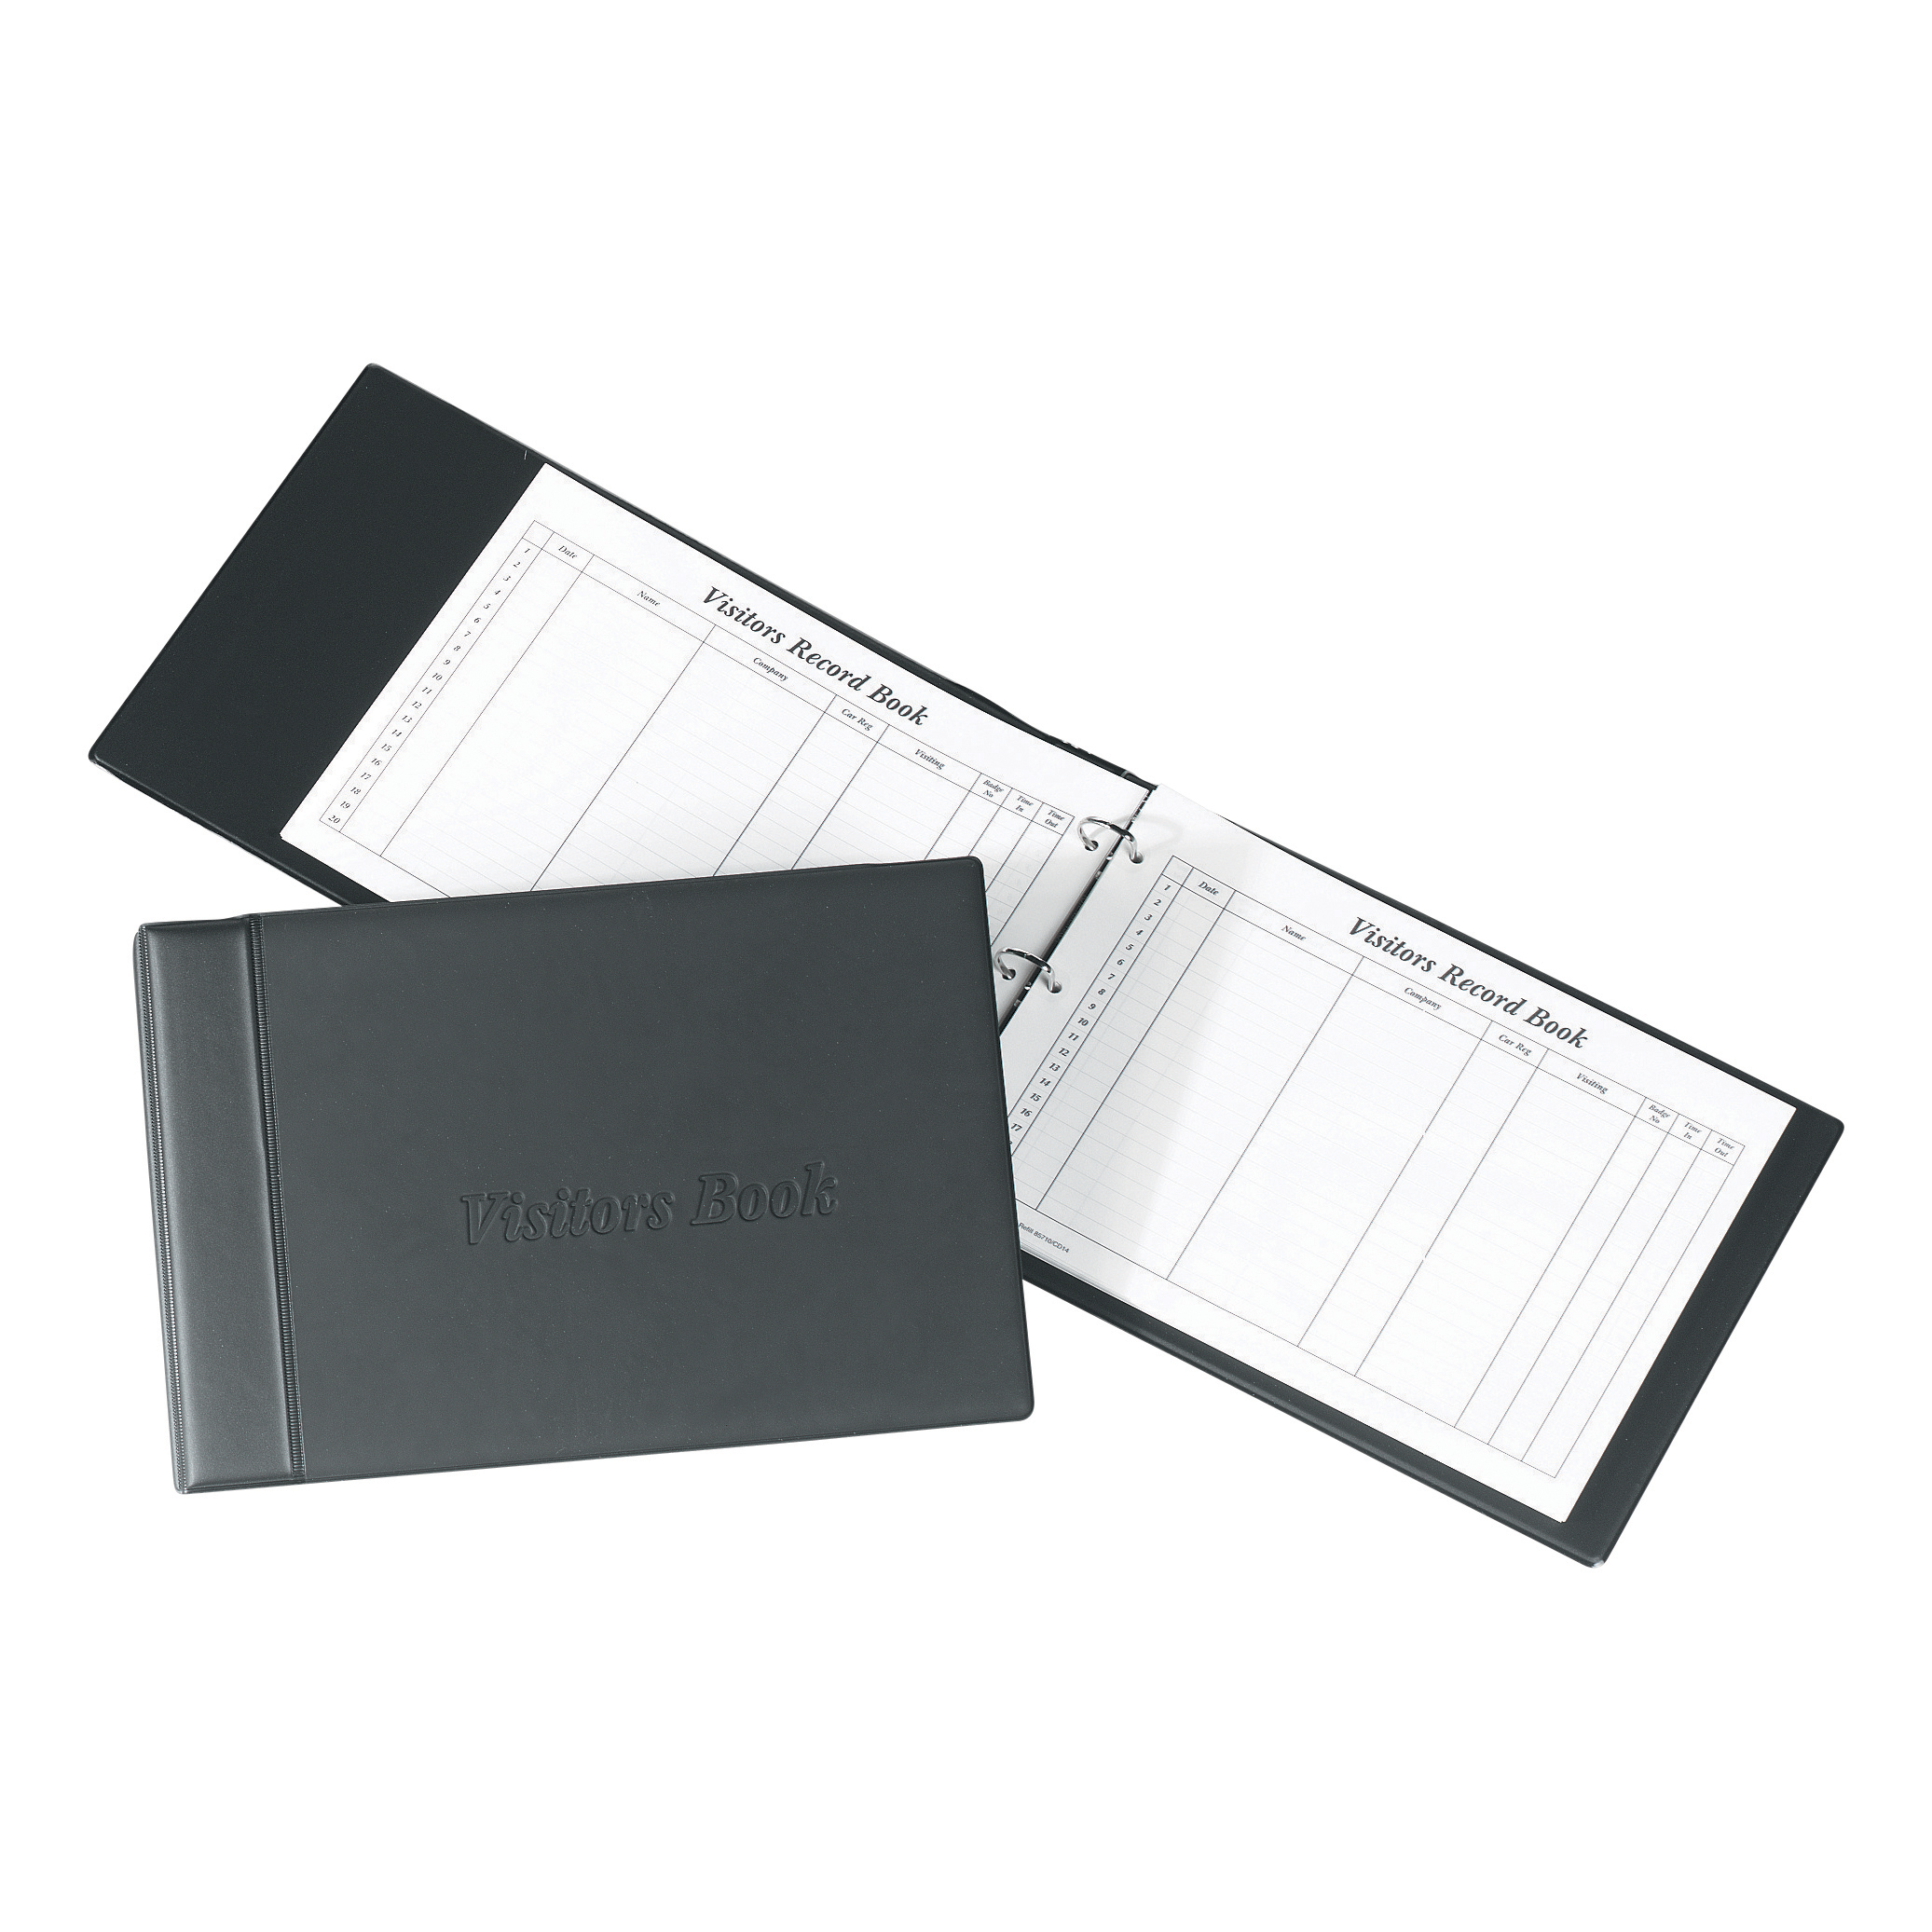 Image for Concord Visitors Book Loose-leaf 3-Ring Binder with 50 Sheets 2000 Entries 230x355mm Black Ref 85710/CD14